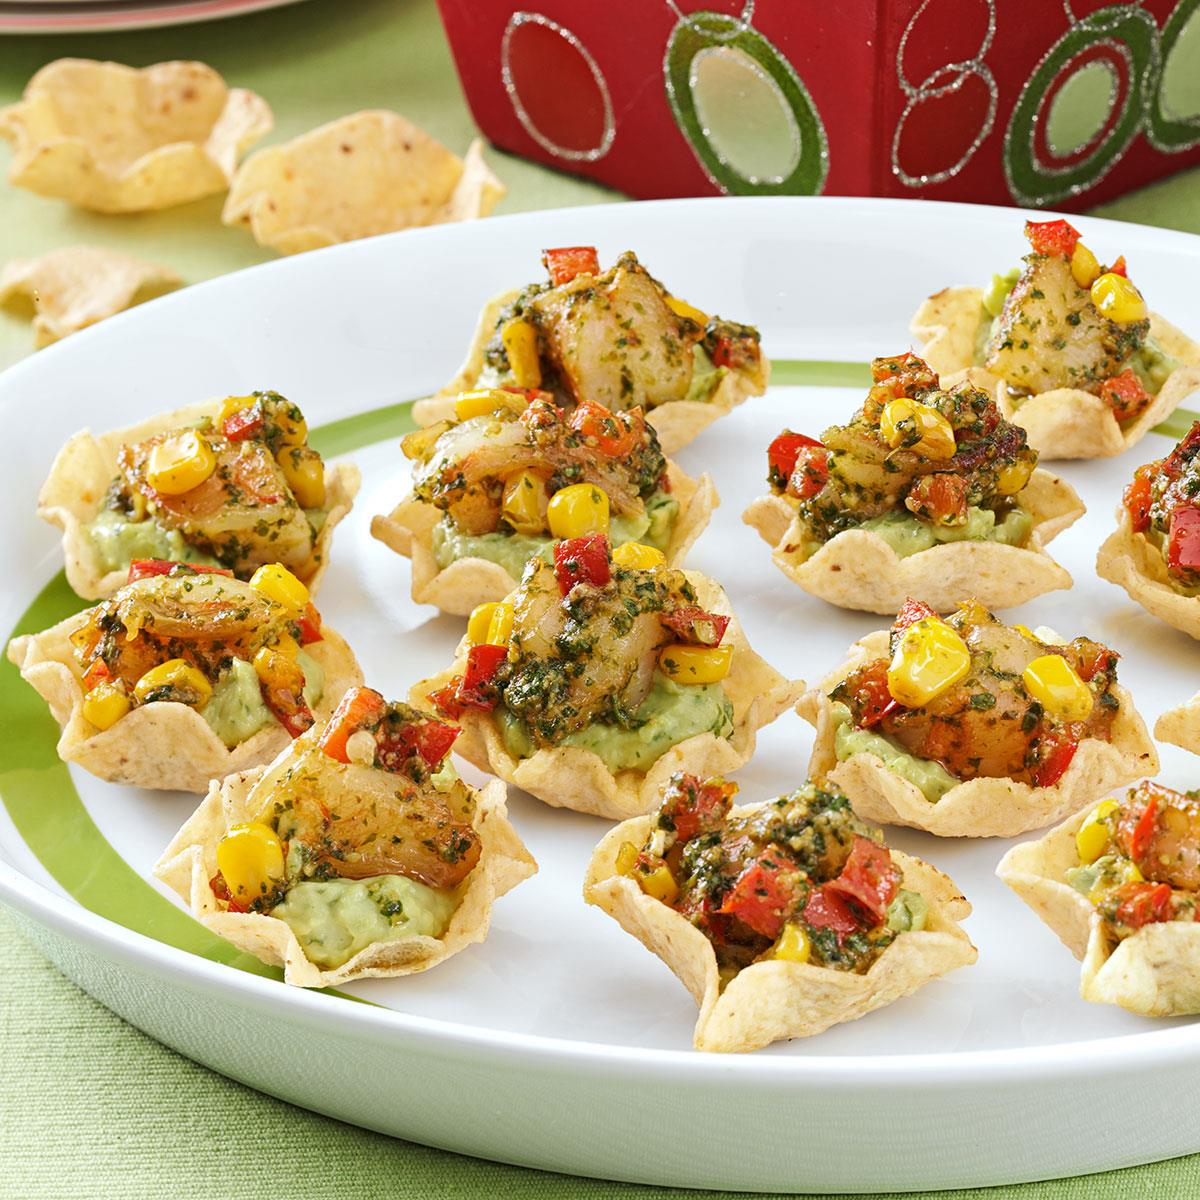 Guacamole shrimp appetizers recipe taste of home for Appetizers to make at home